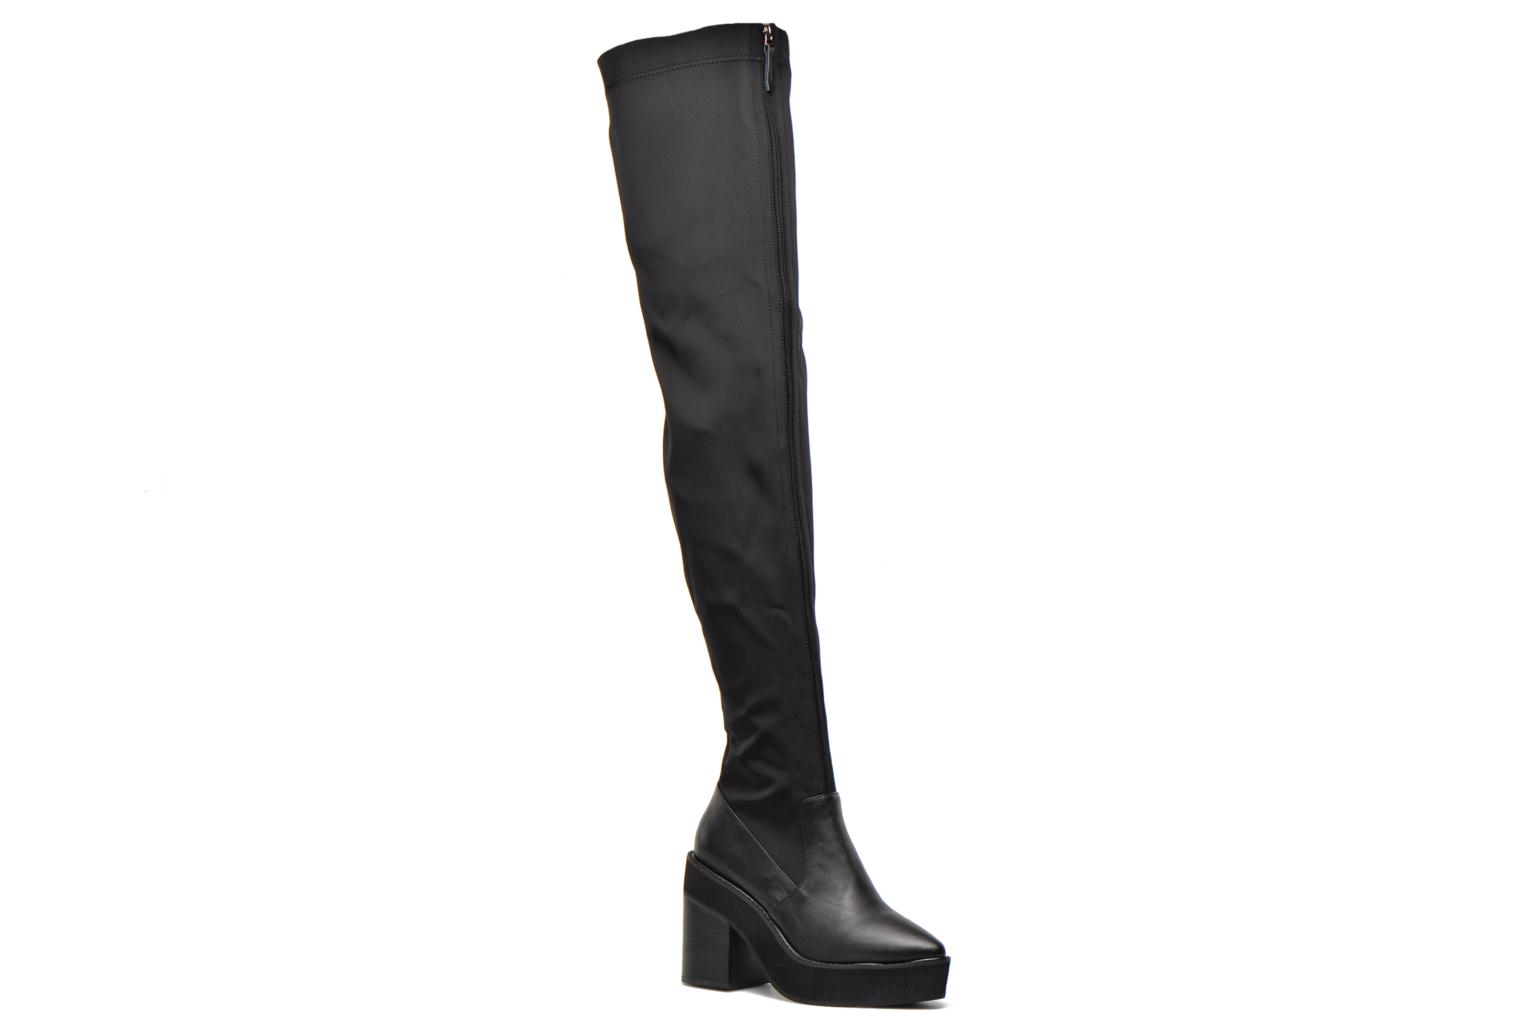 Bottes Intentionally blank Infinity Noir vue détail/paire